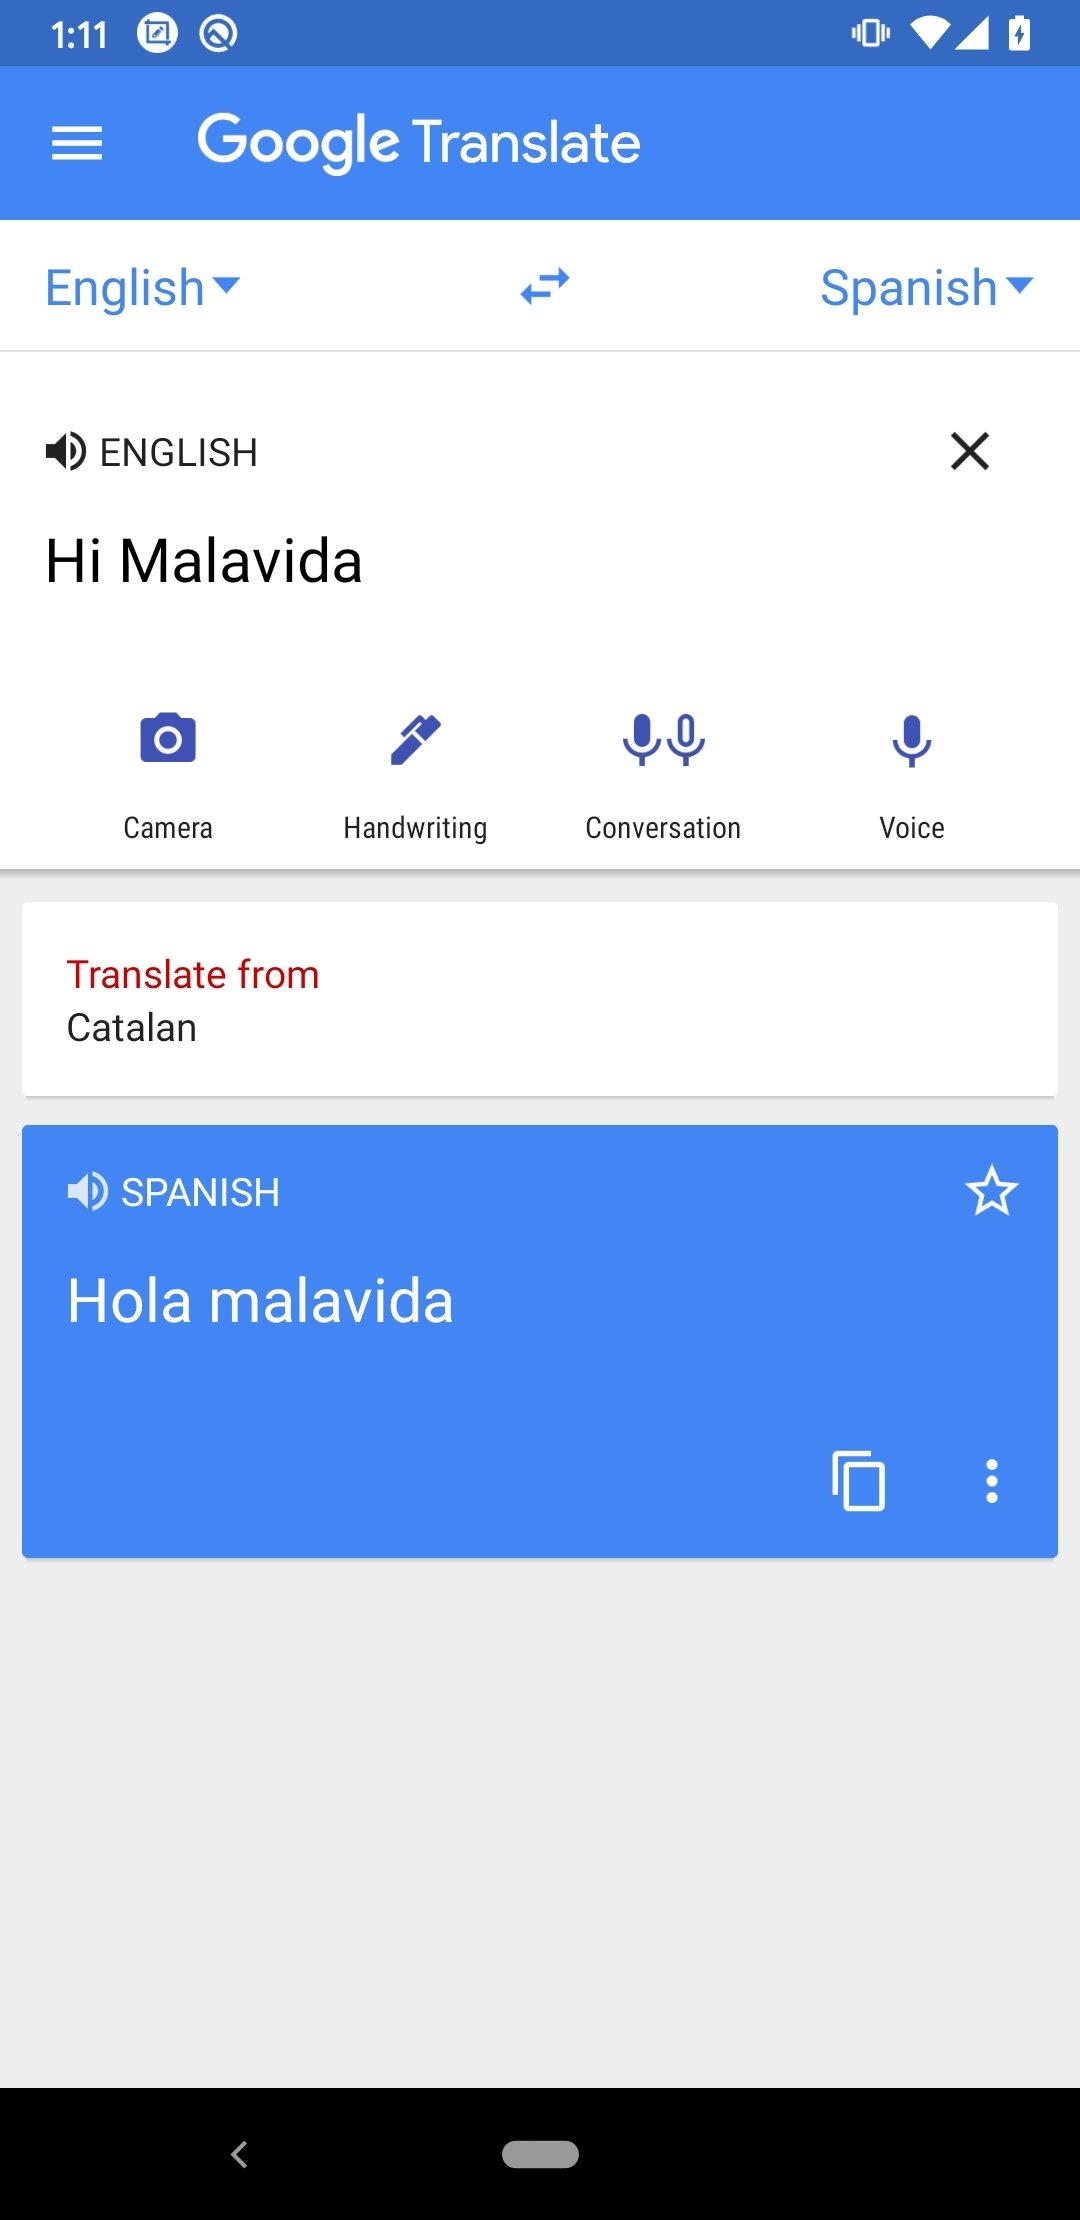 Google Translate Android image 5